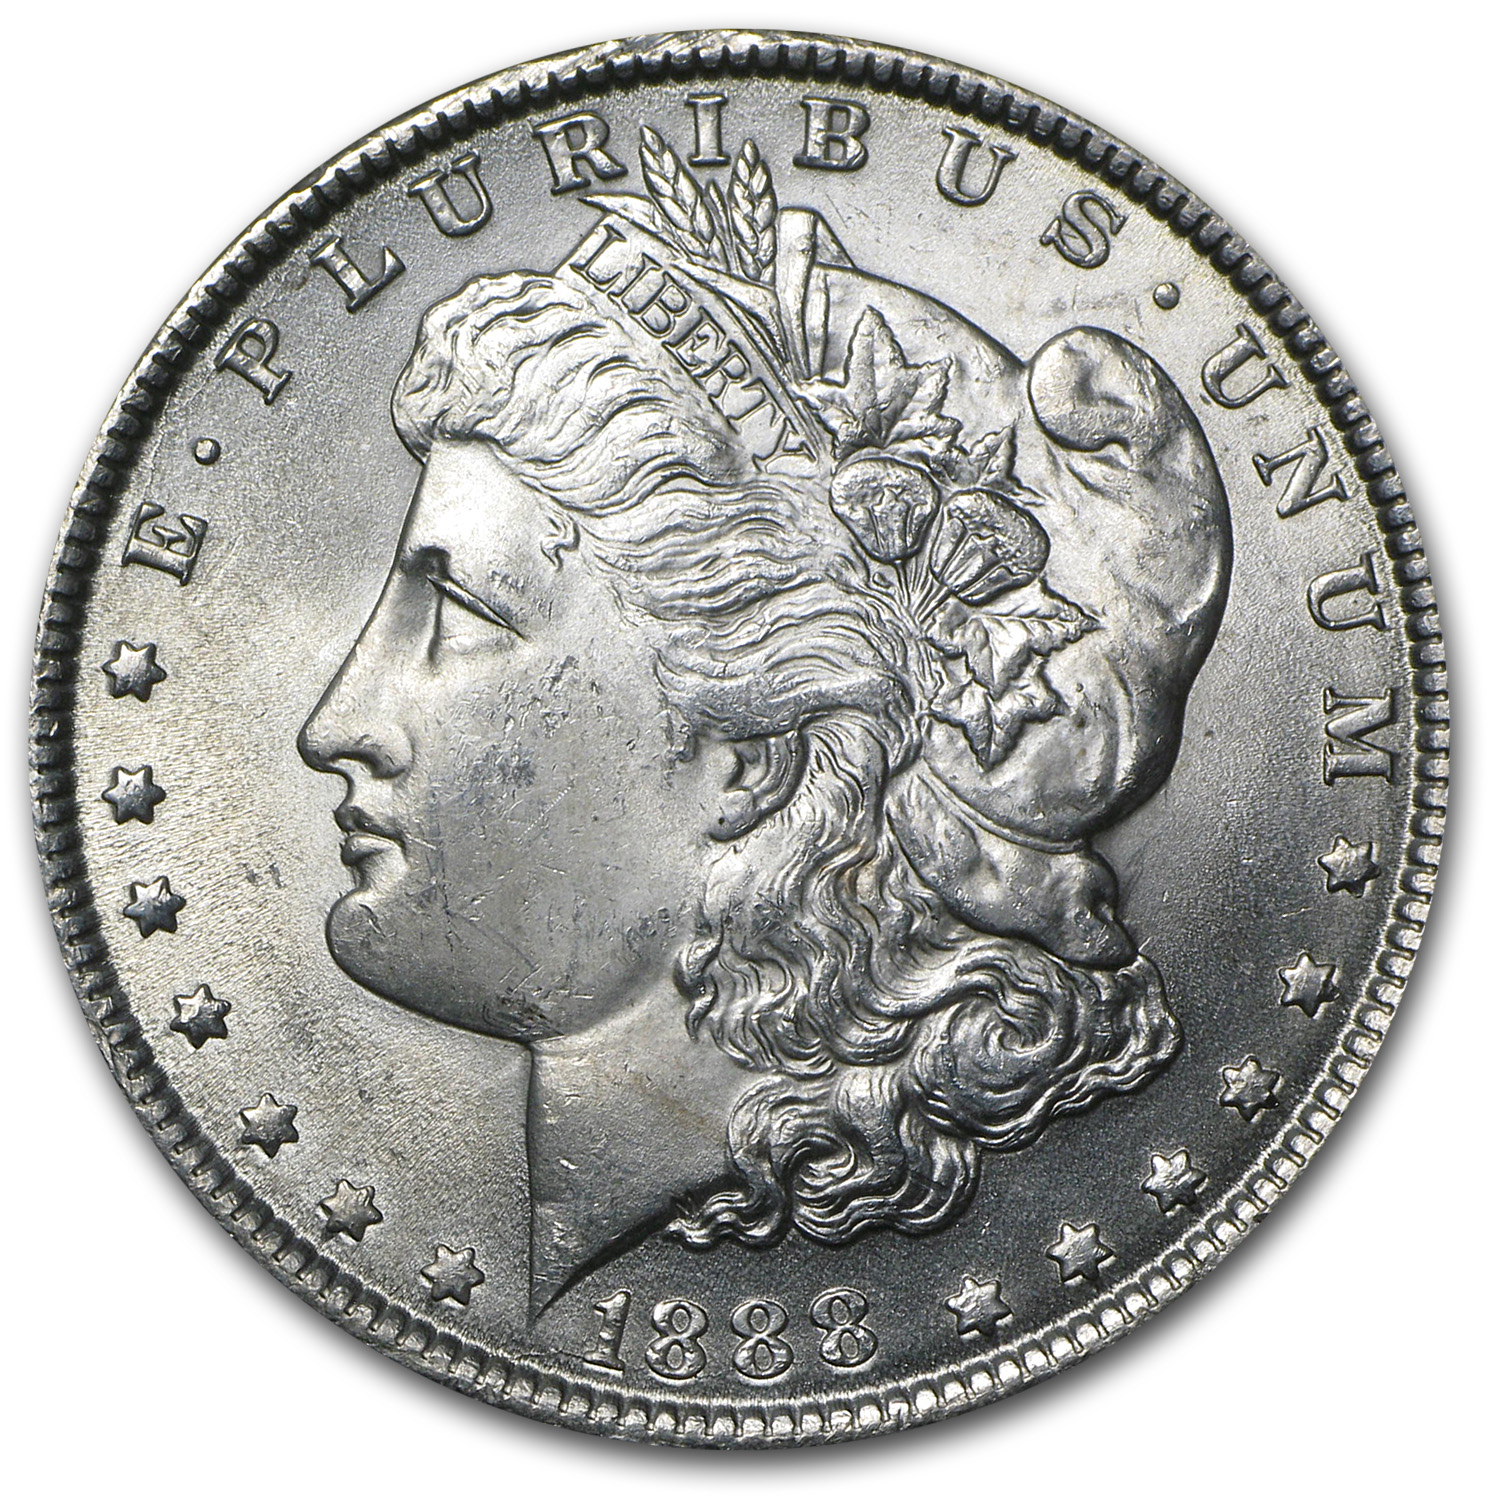 1888 Morgan Dollar - Brilliant Uncirculated